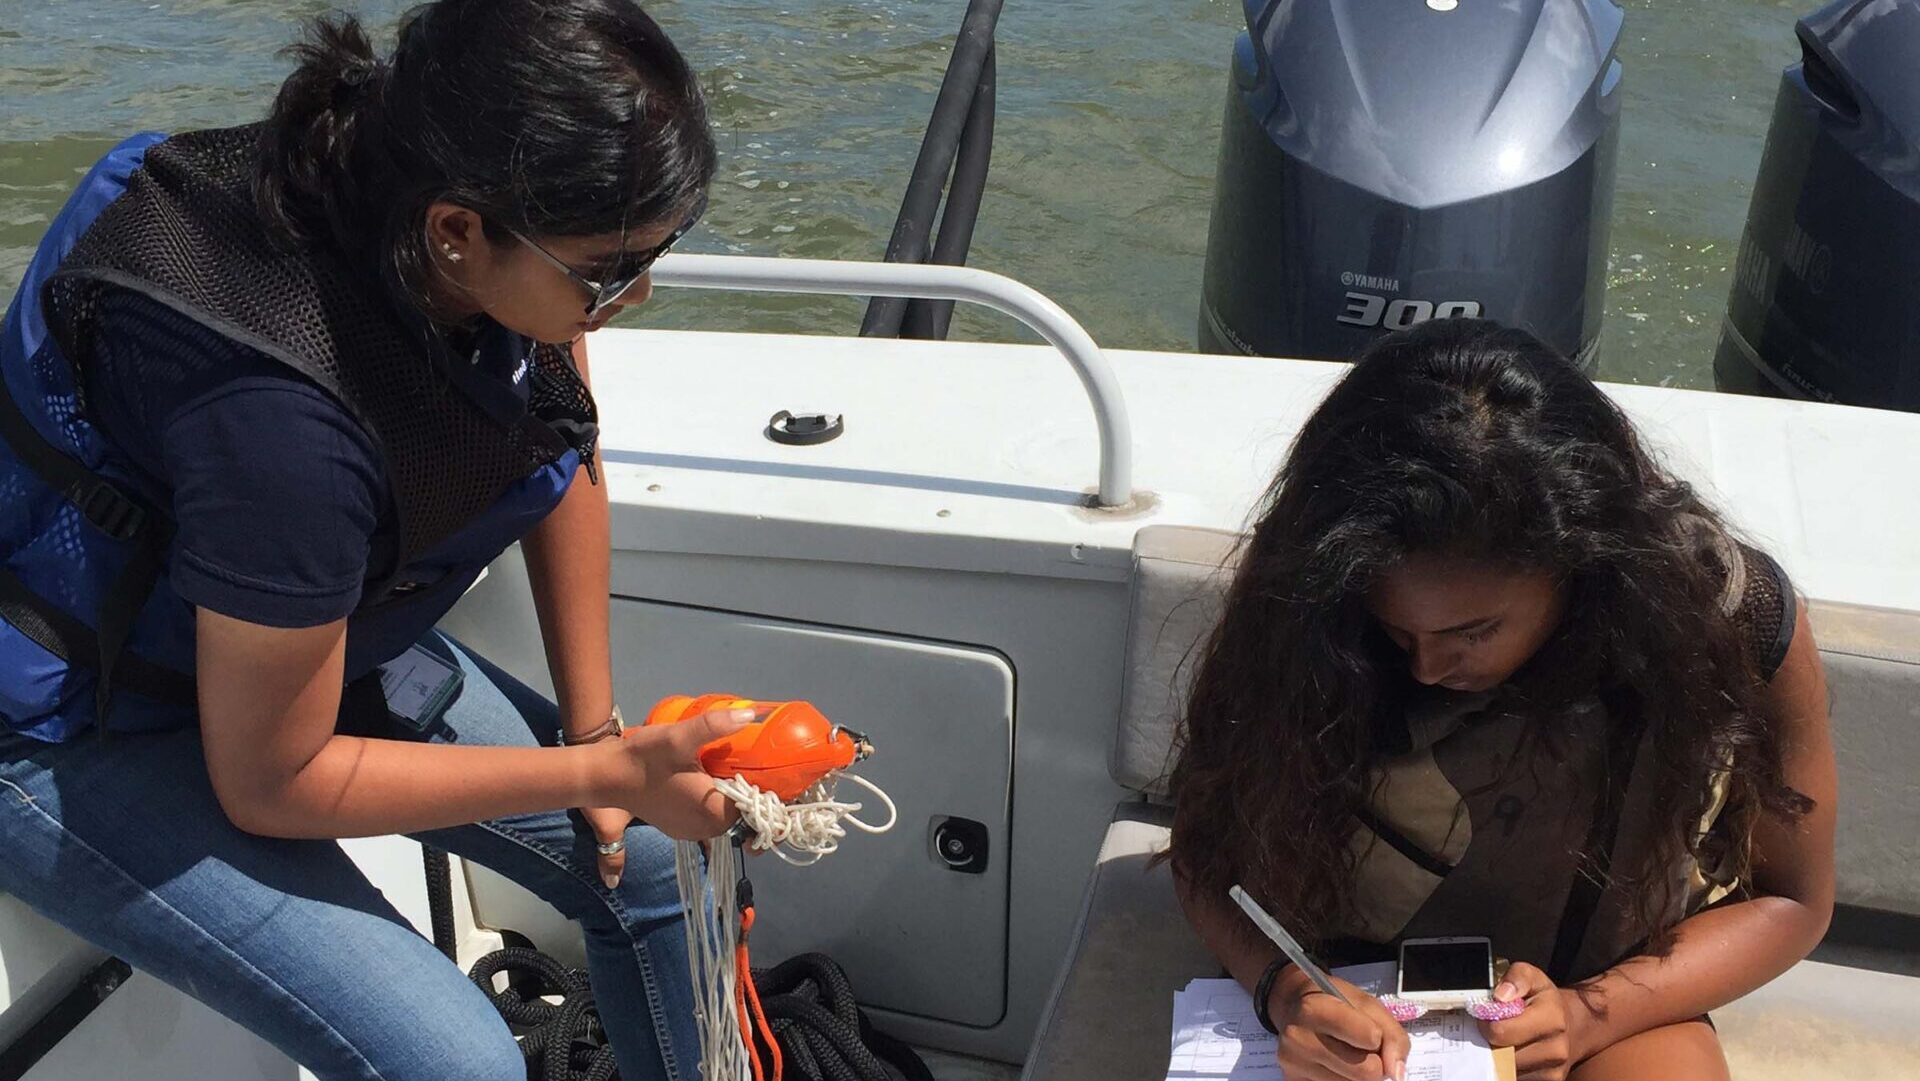 Scientists writing down their findings from a water sample on a boat